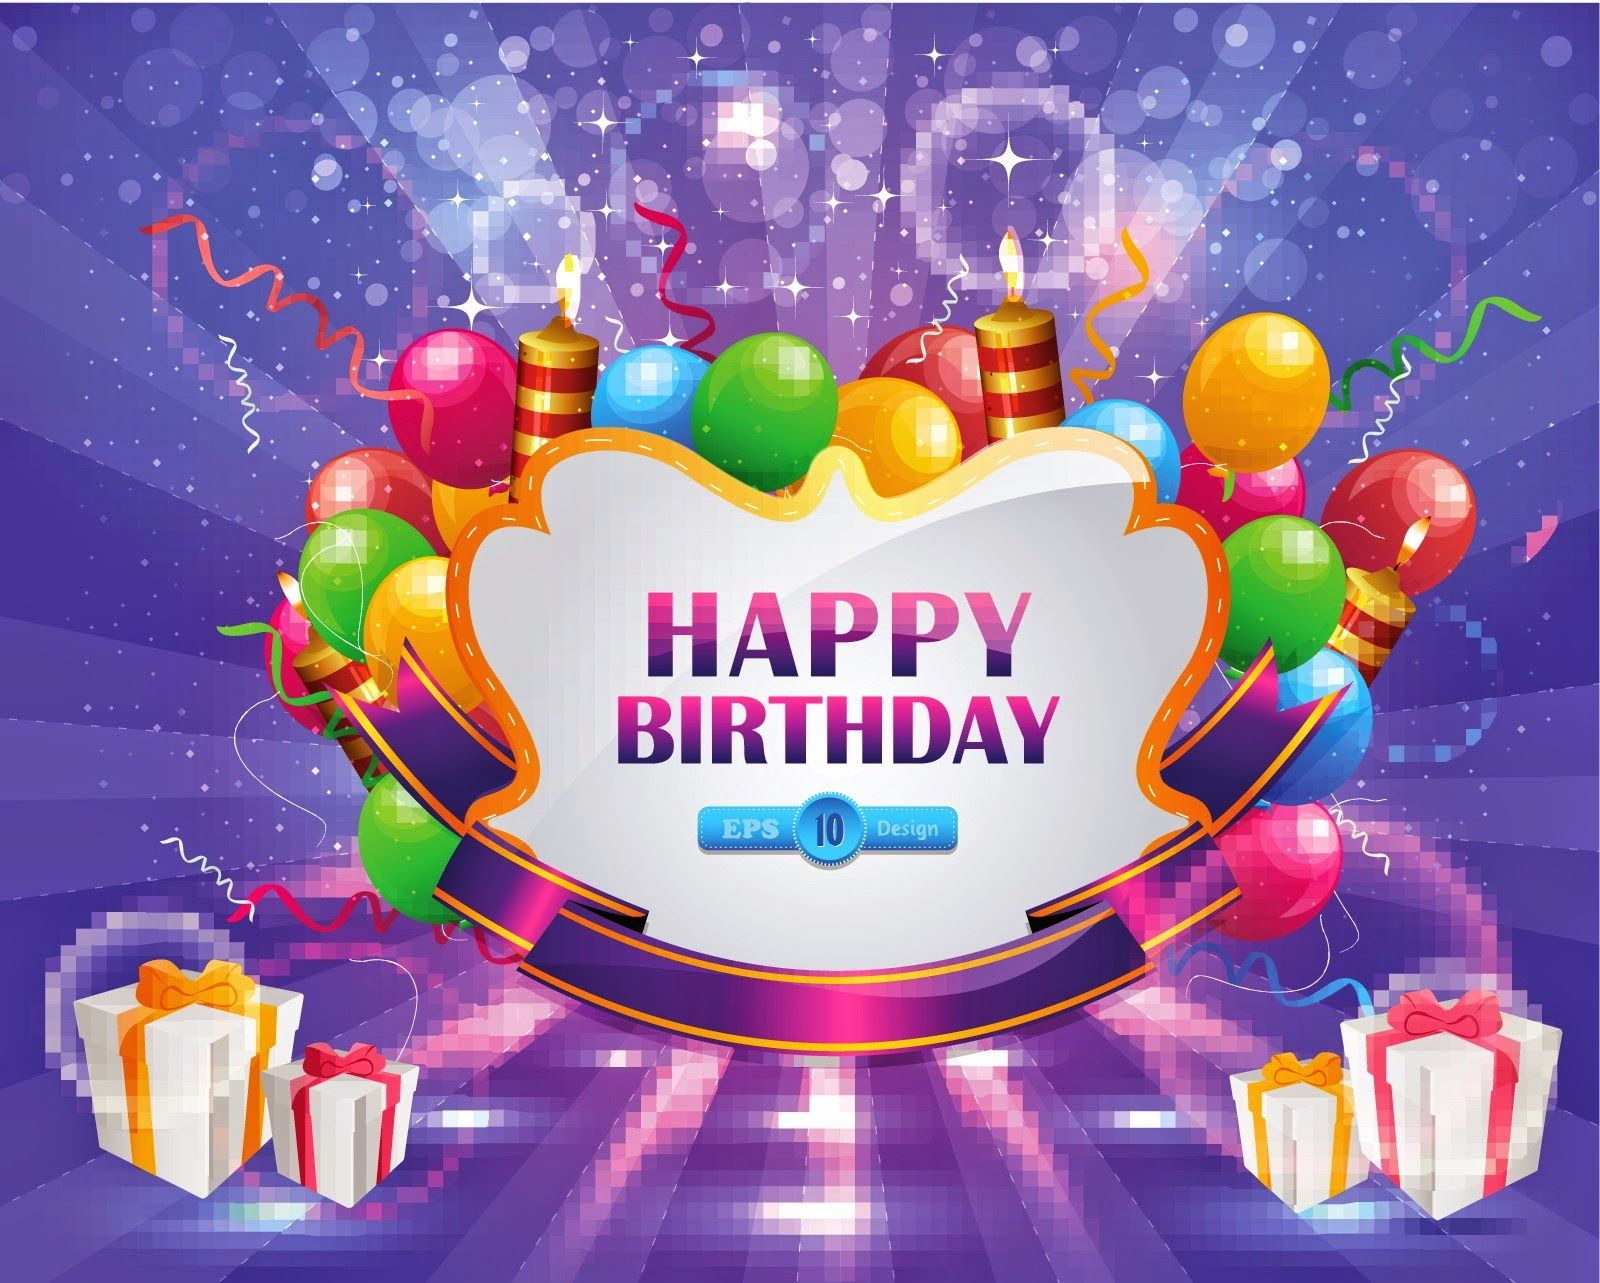 Happy Birthday Quotes & Pictures Images Free Download